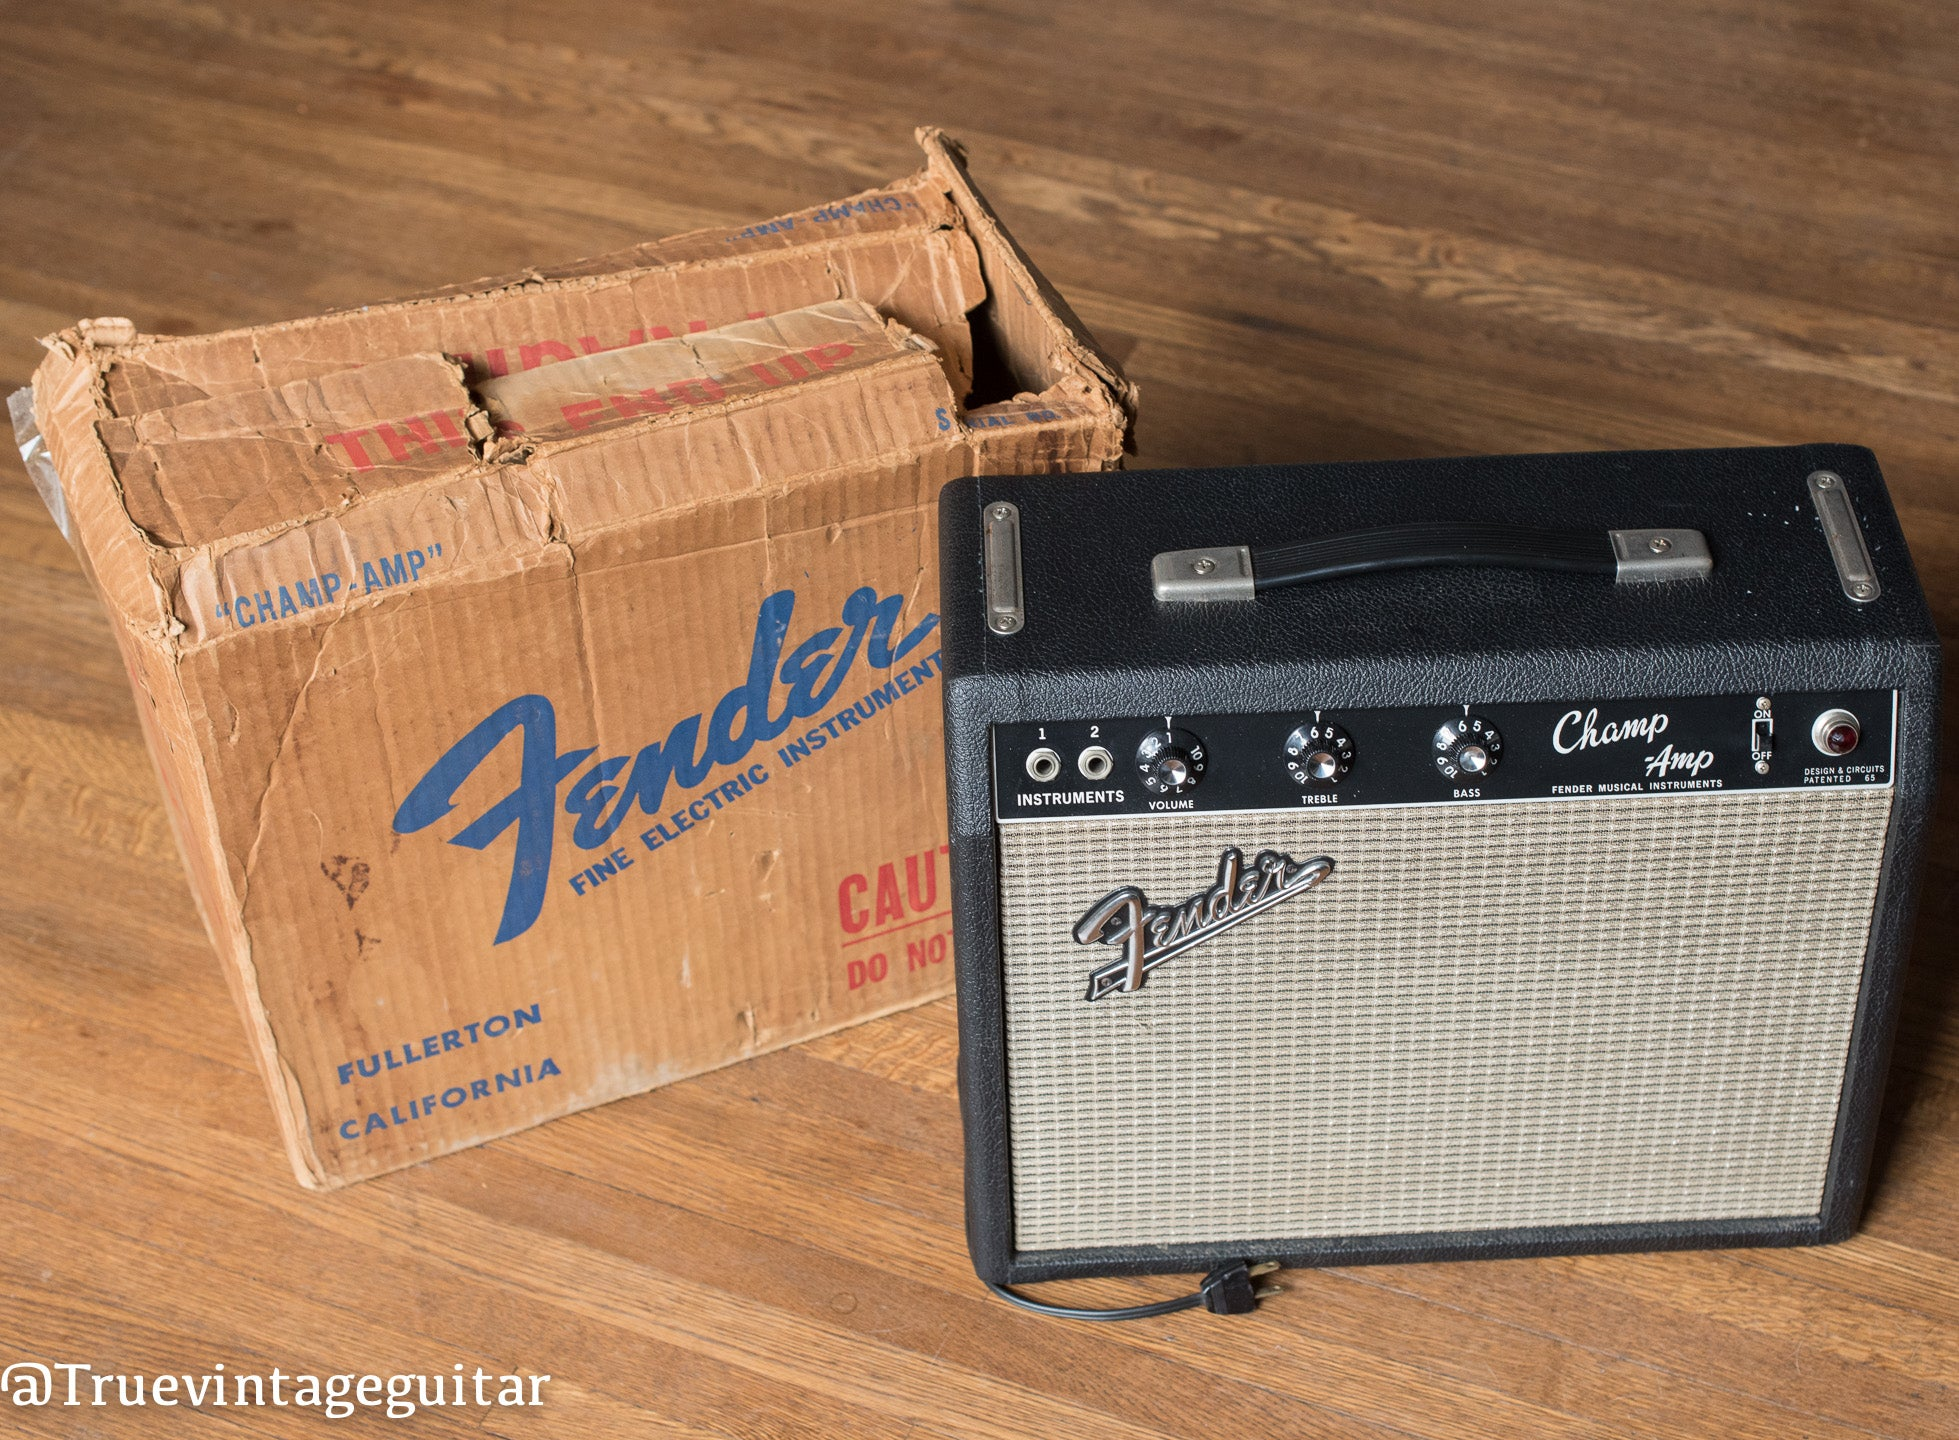 Vintage 1966 Fender Champ amp with shipping container